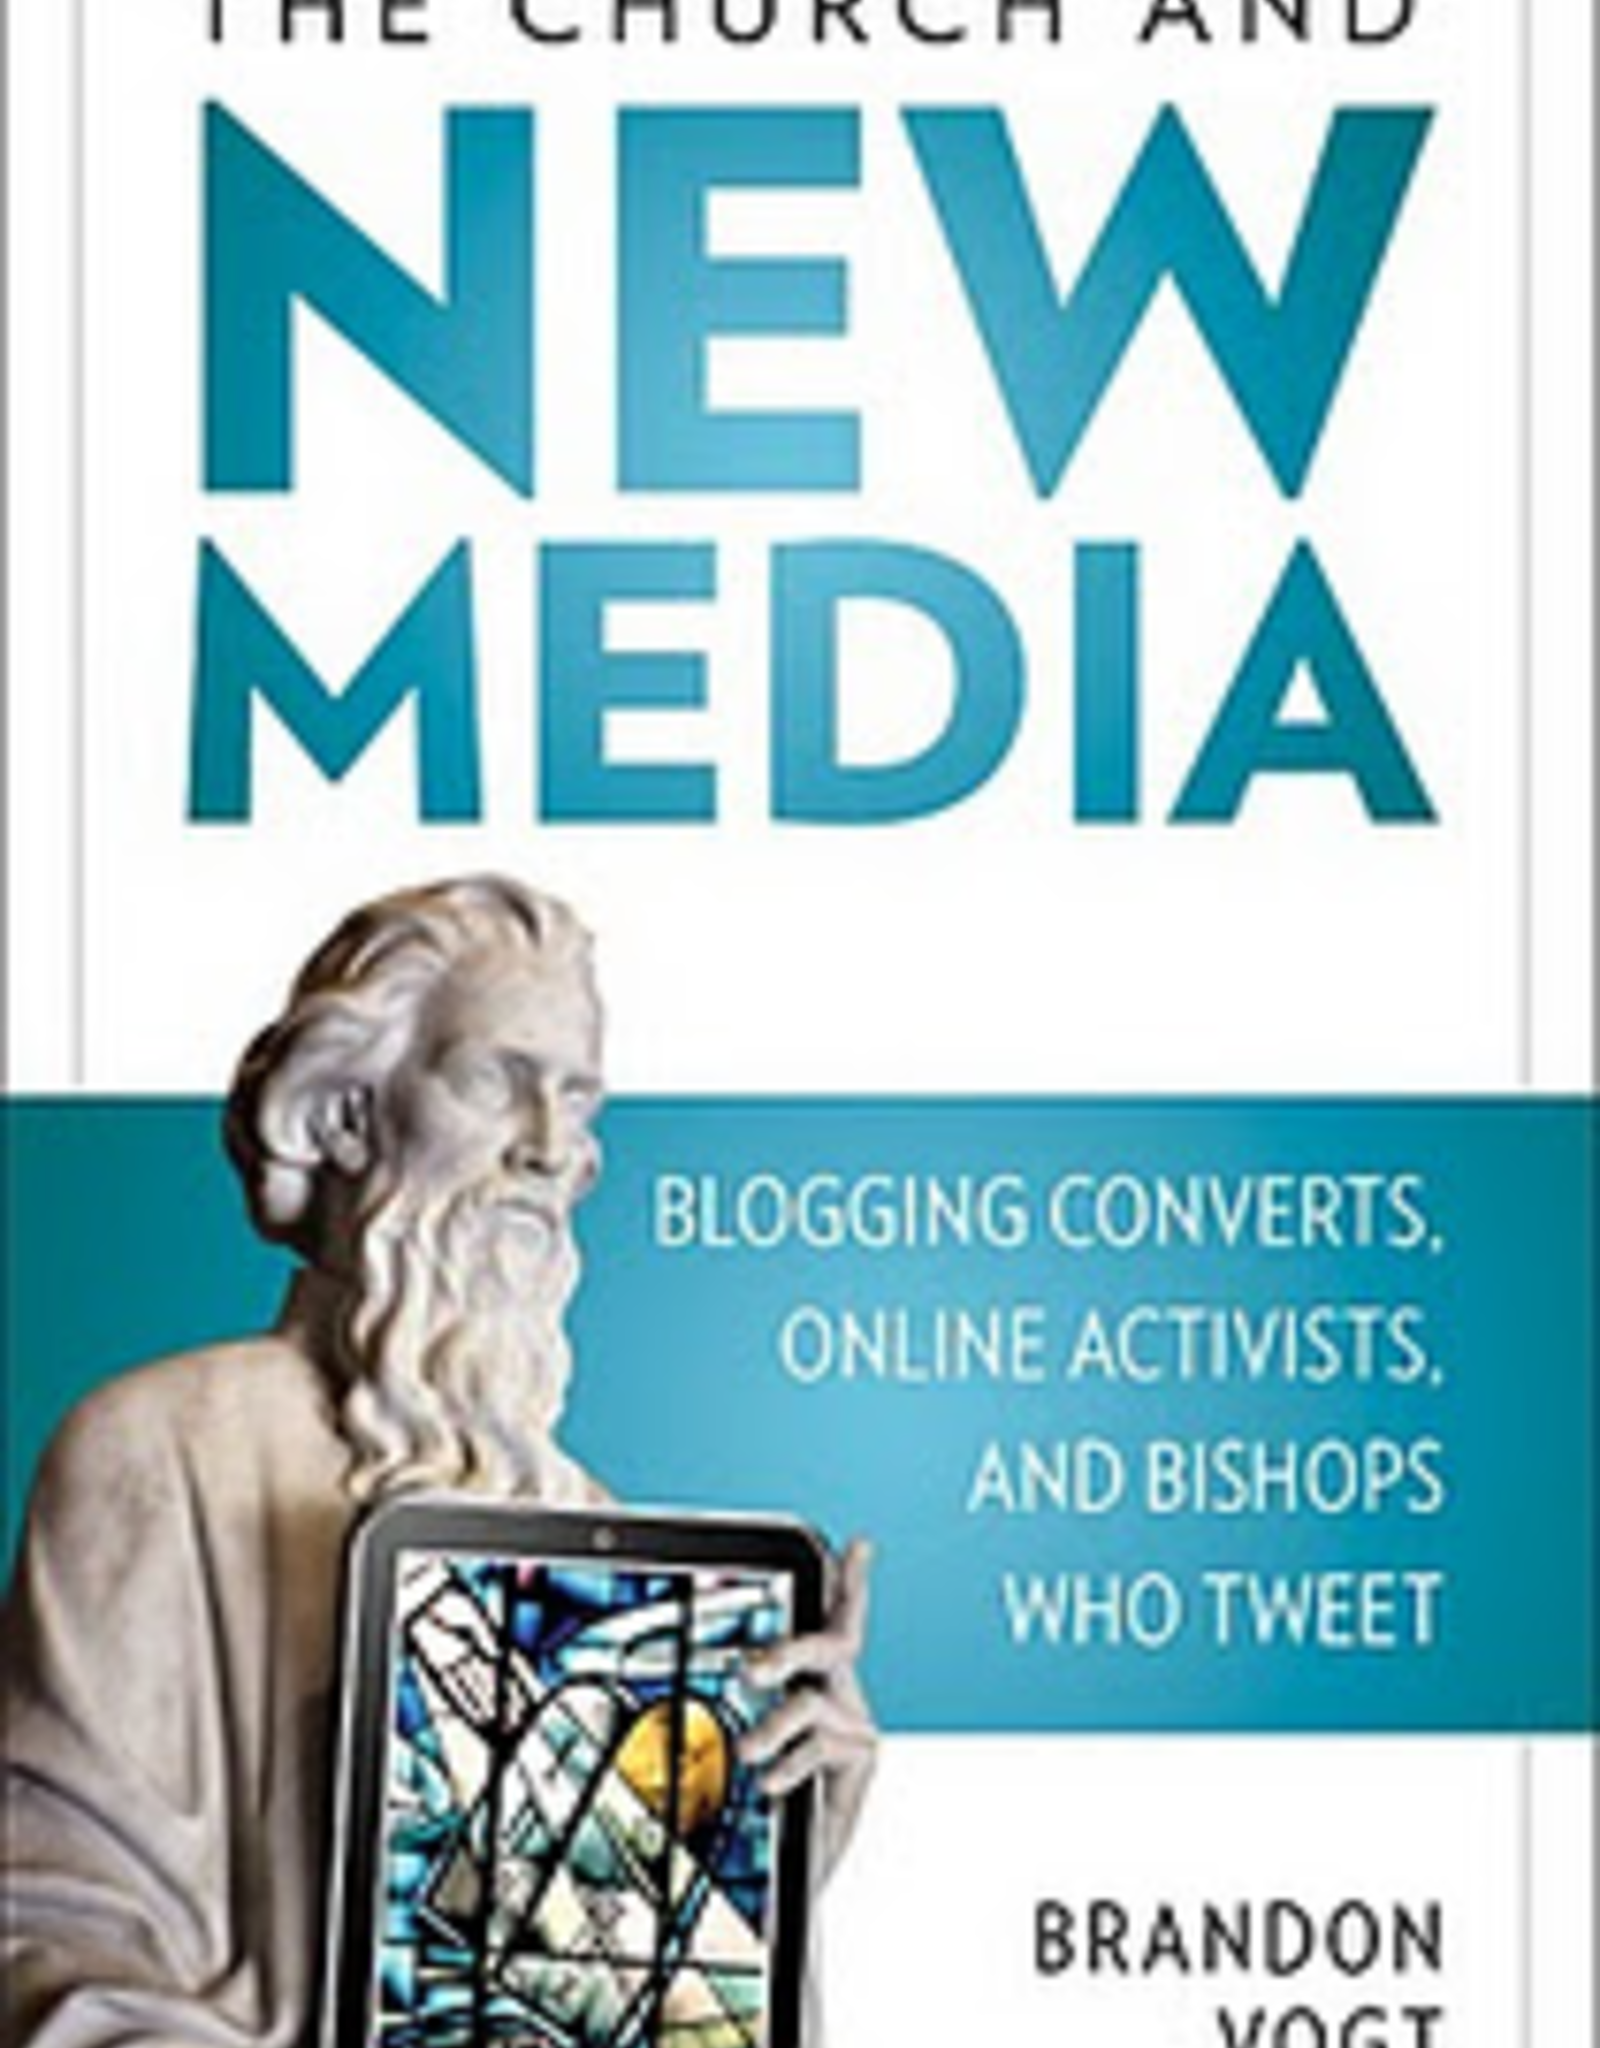 Our Sunday Visitor The Church and New Media, by Brandon Vogt